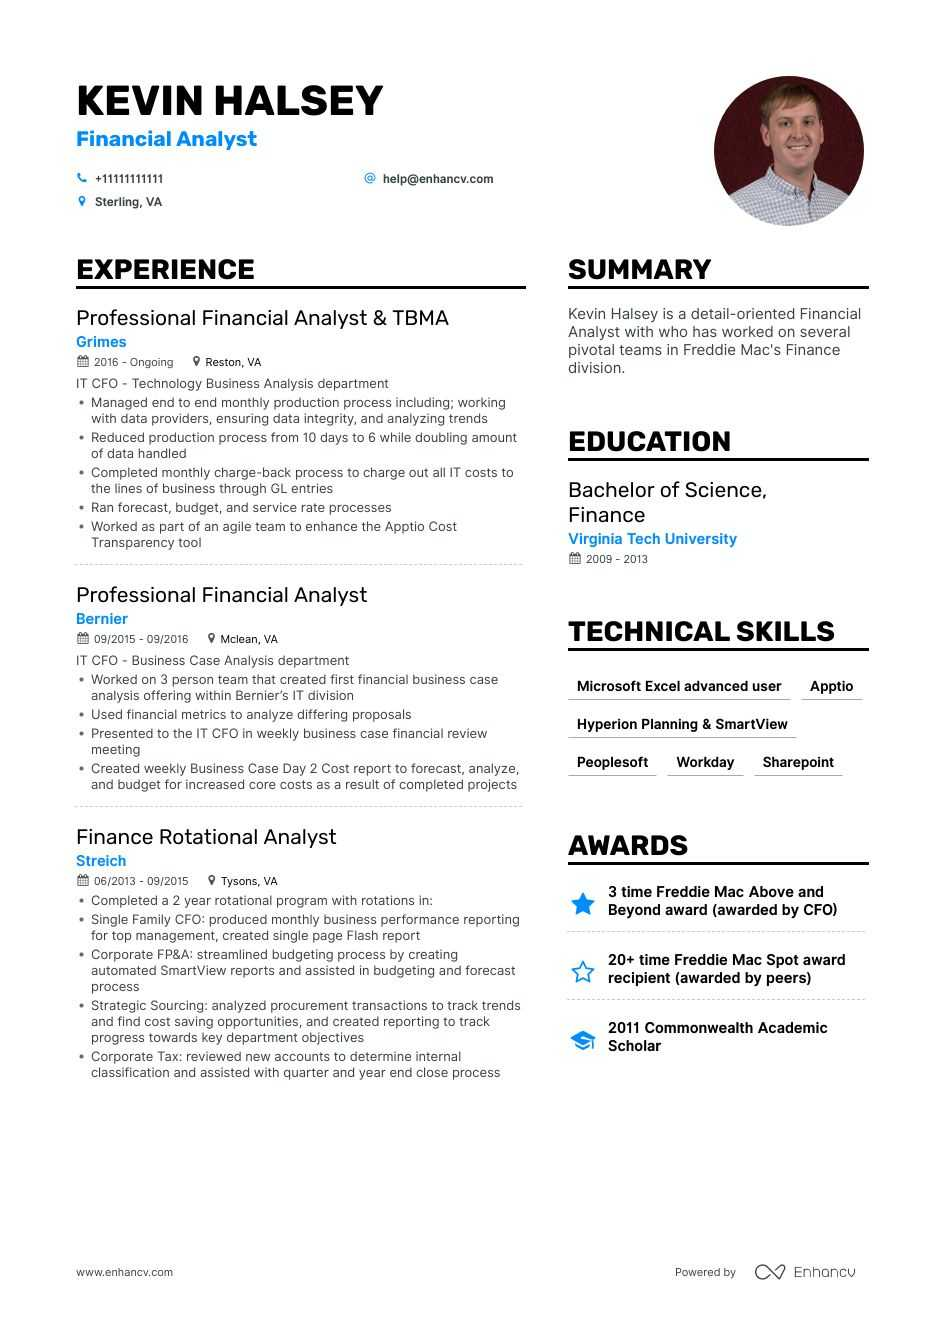 financial analyst resume example for enhancv skills leasing consultant post thank you Resume Financial Analyst Skills Resume